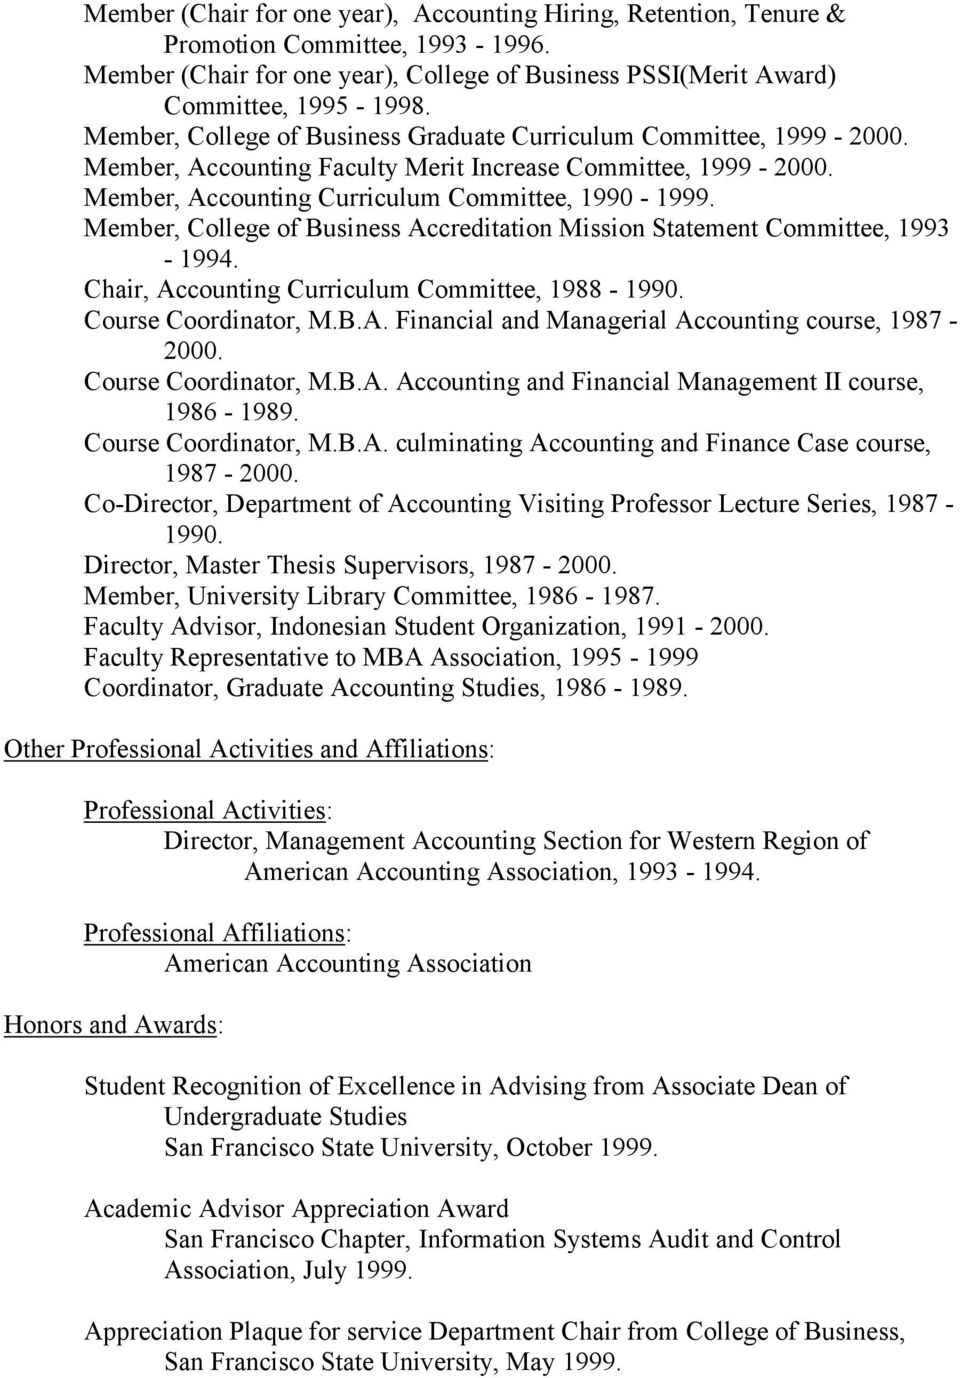 Member, College of Business Accreditation Mission Statement Committee, 1993-1994. Chair, Accounting Curriculum Committee, 1988-1990. Course Coordinator, M.B.A. Financial and Managerial Accounting course, 1987-2000.